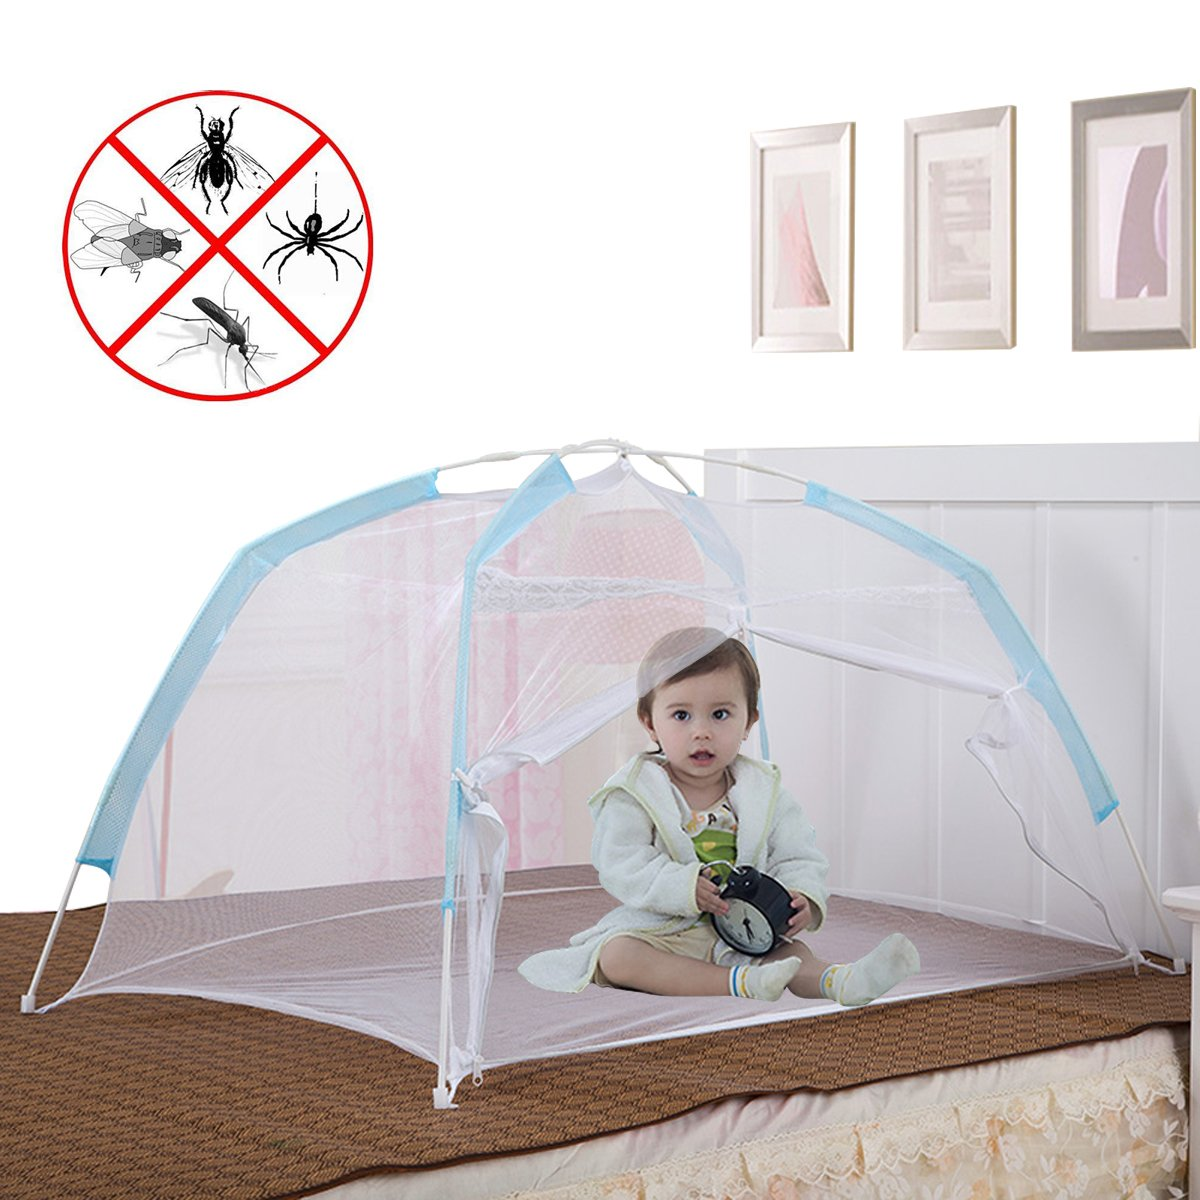 Baby Crib Tent for Bed, Portable Mosquito Net for Toddler Travel Play Canopy on Mattress Cover, Mesh Playpen Safety Kids from Sleep Bumper Nursery Netting on Cot Bedding, can be Folding with Pack Blue coffled iek040036001mayeight